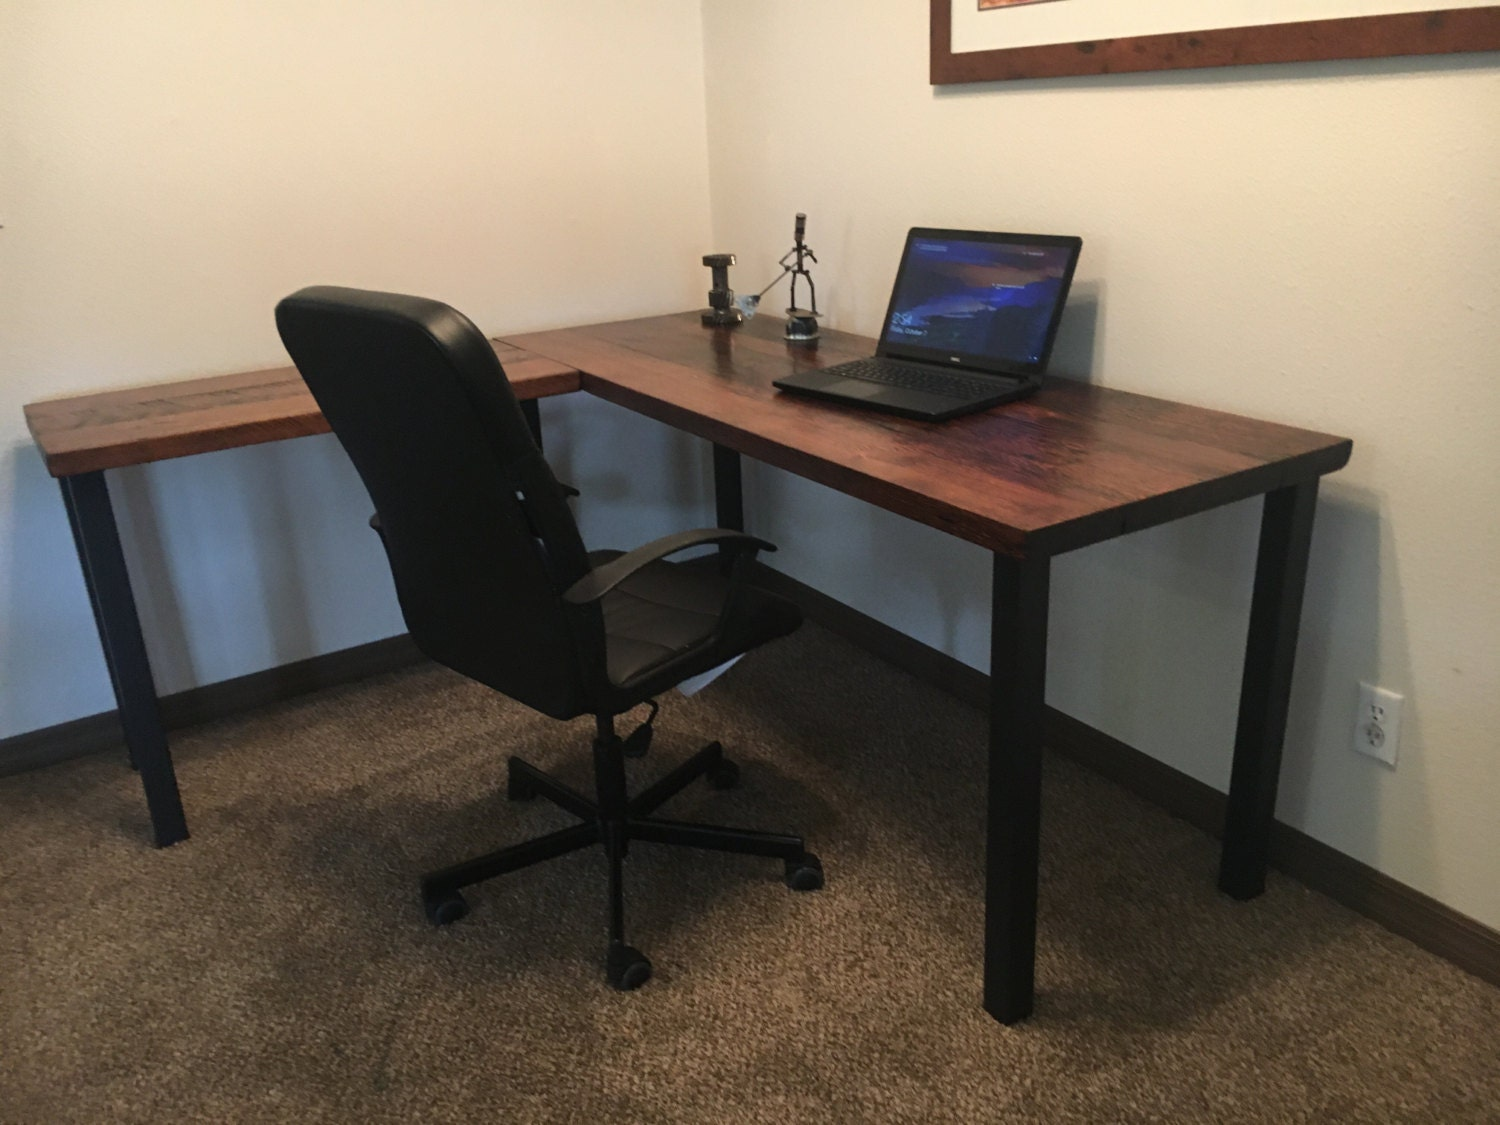 L-shaped Desk. Reclaimed wood desk. Old rustic desk.